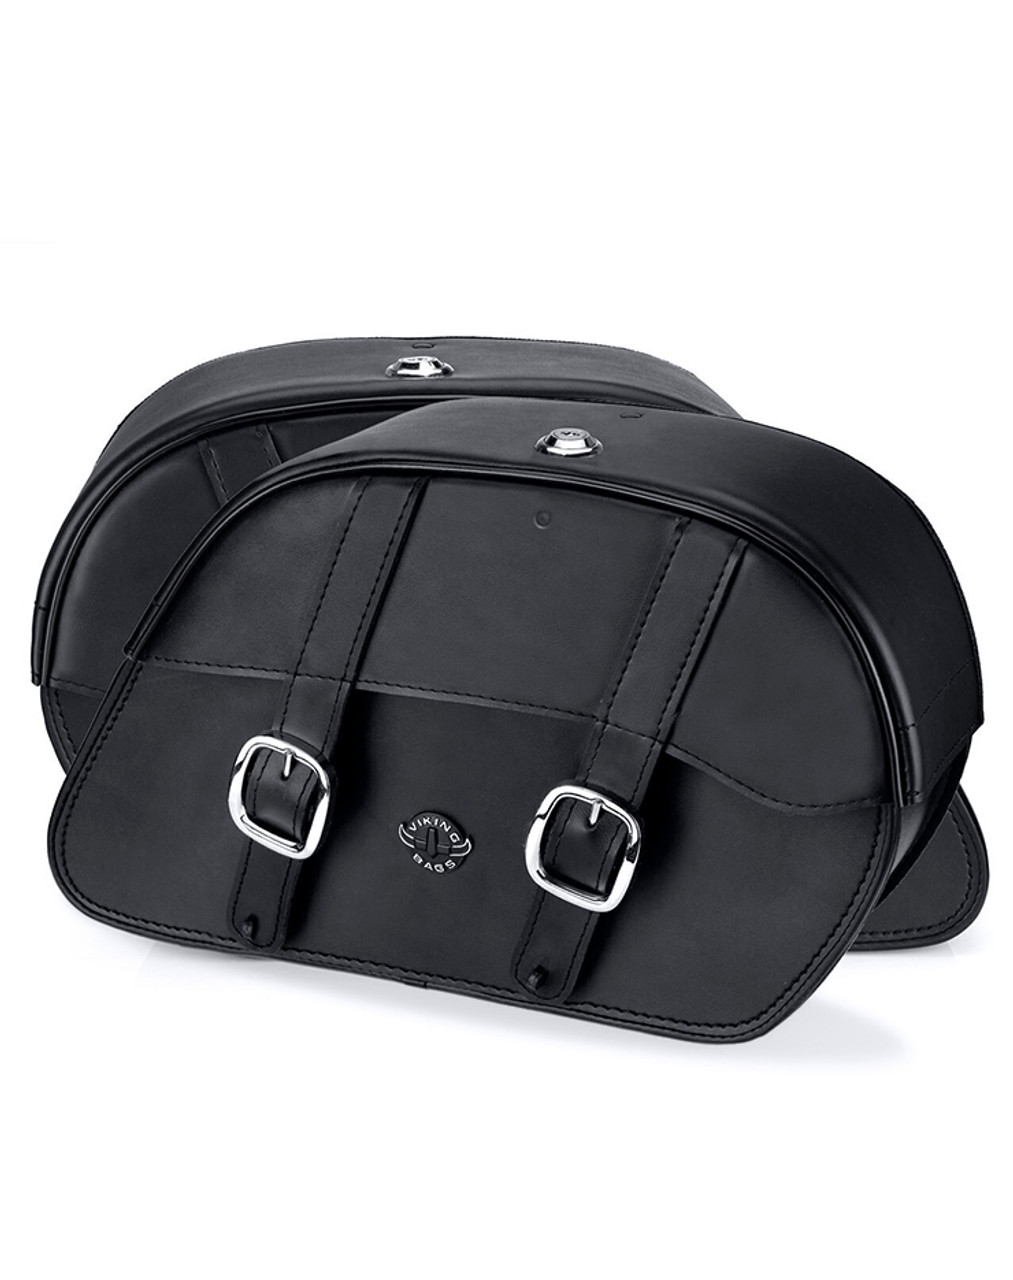 VikingBags Skarner Large Double Strap Yamaha V Star 650 Classic Leather Motorcycle Saddlebags Both Bags View